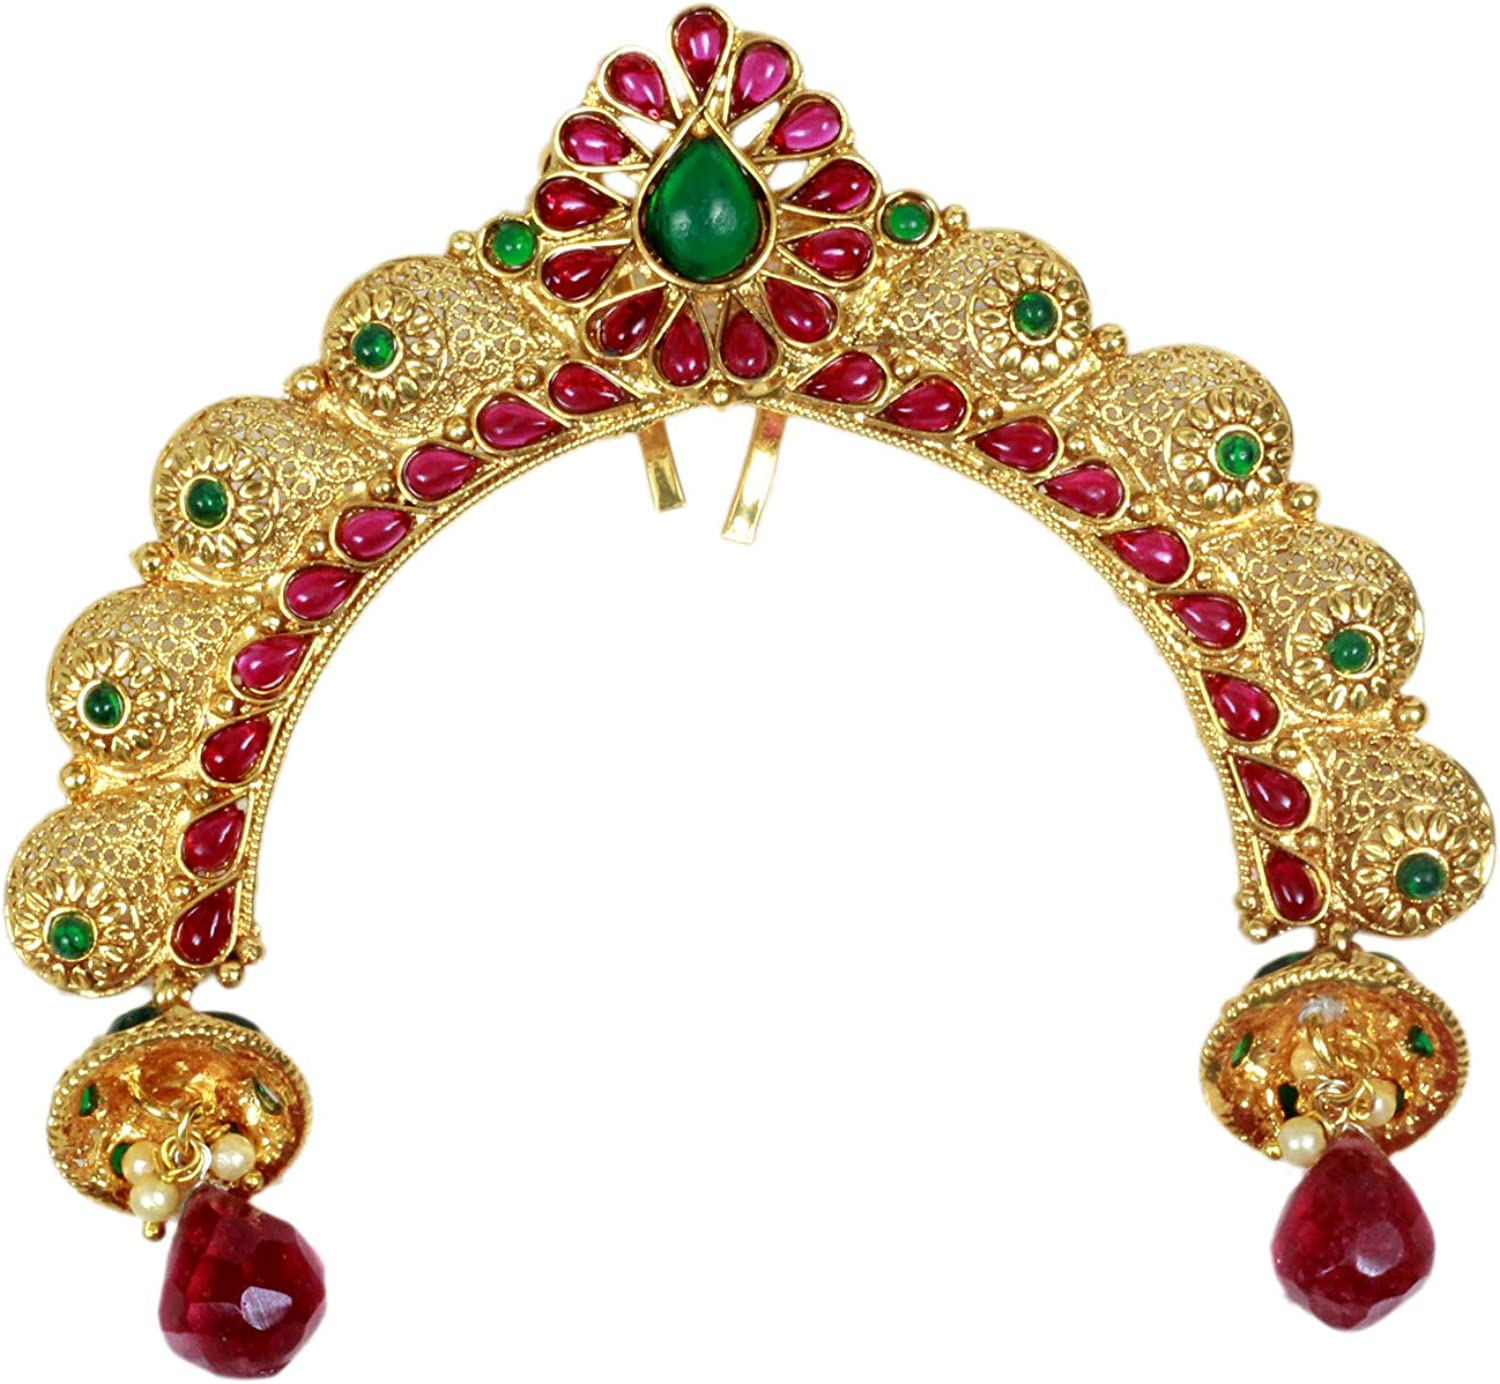 SANARA Indian Traditional Gold Plated Ruby Green Stone Made Hair Pin Women Wedding & Party Wear Jewelry